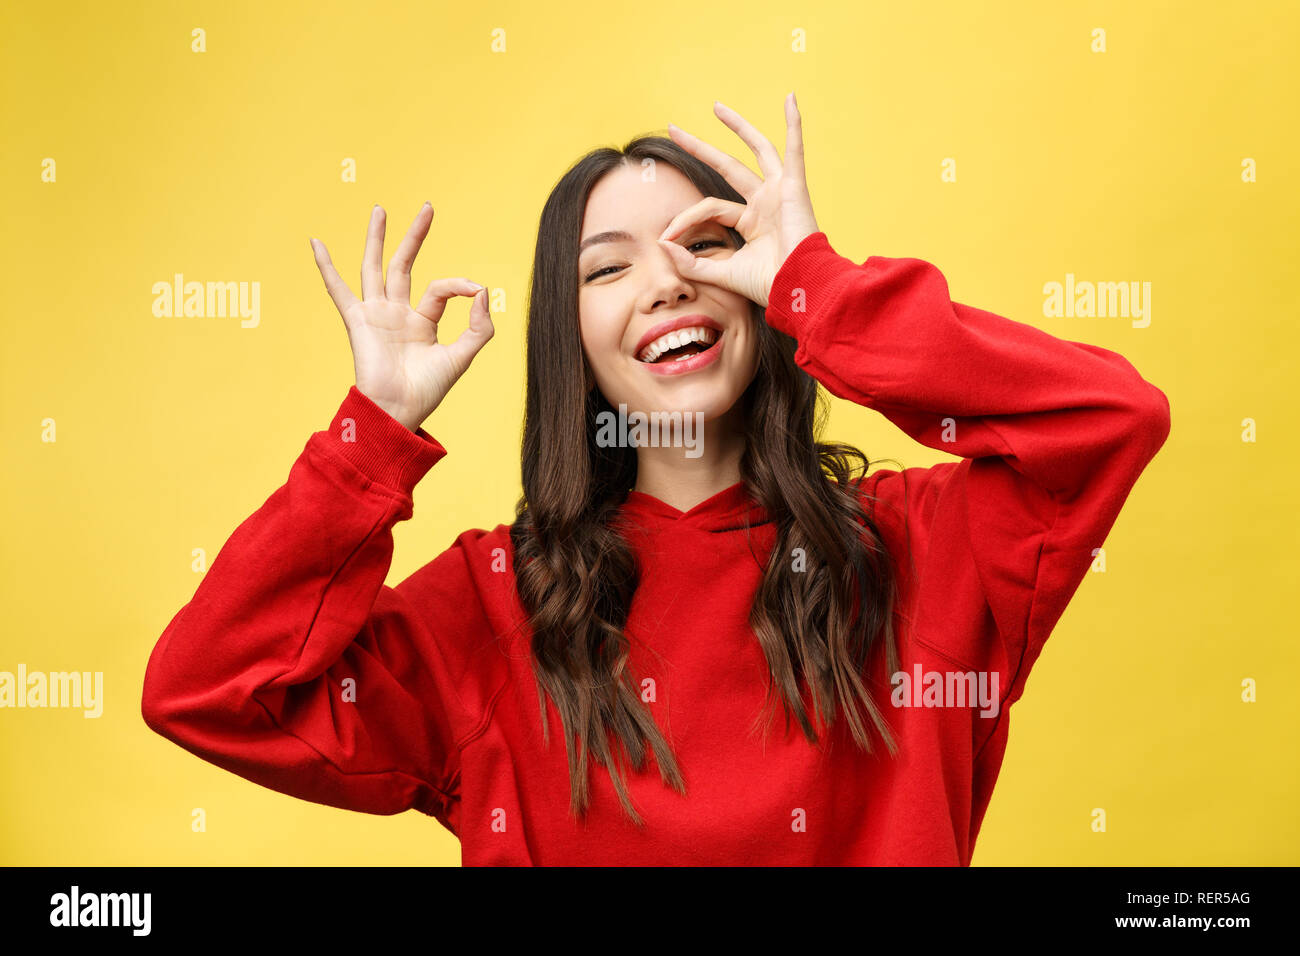 Close up portrait of beautiful joyful Caucasian female smiling, demonstrating white teeth, looking at the camera through fingers in okay gesture. Face expressions, emotions, and body language Stock Photo